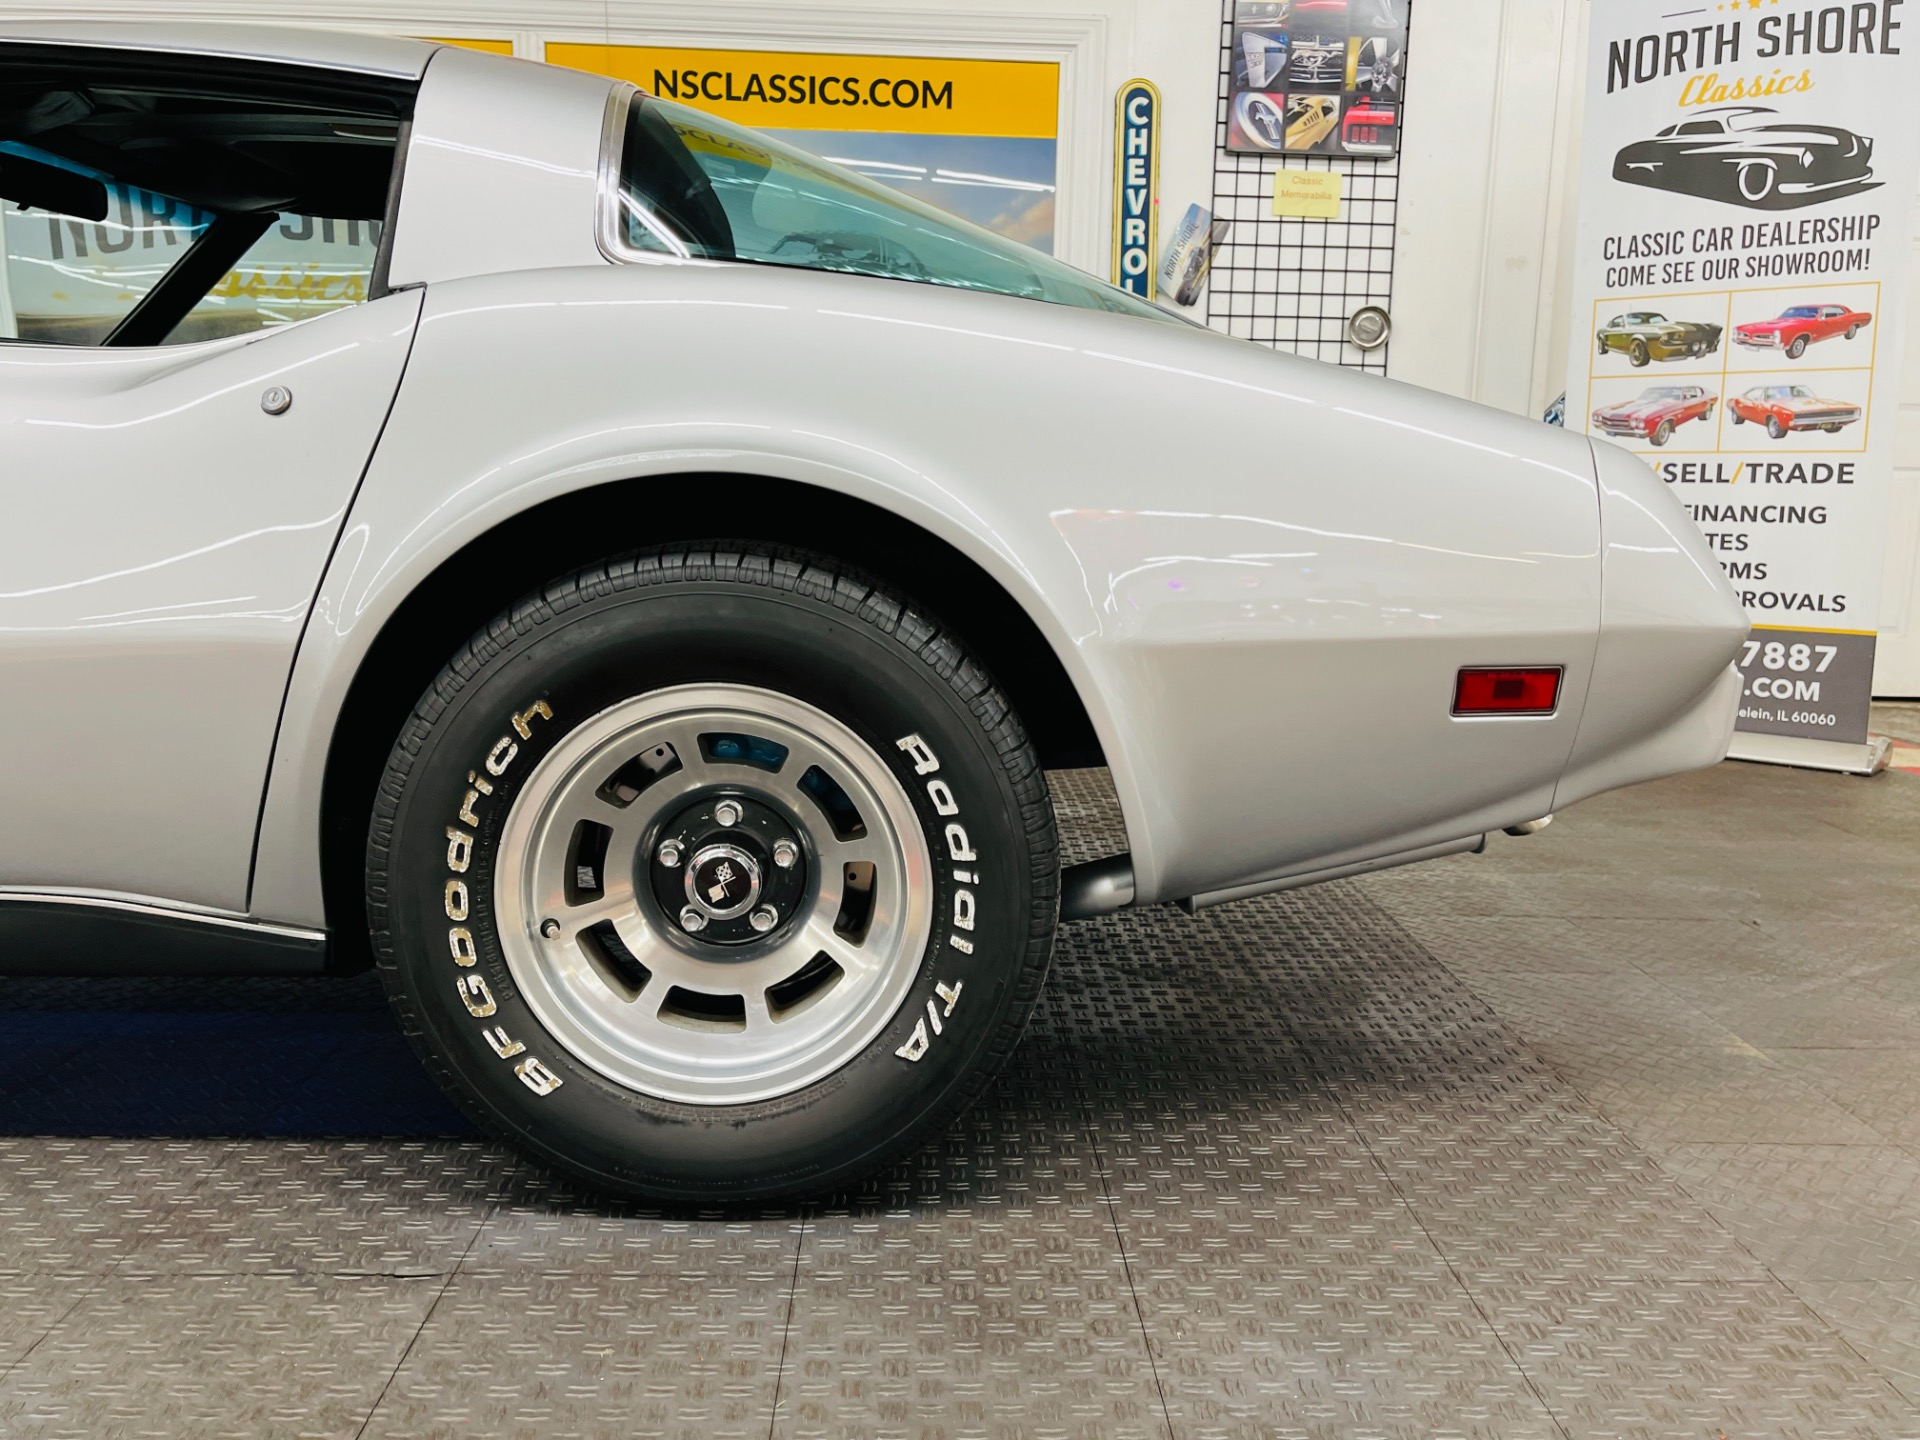 Used 1978 Chevrolet Corvette - 25TH ANNIVERSARY - LOTS OF UPGRADES - SEE VIDEO   Mundelein, IL